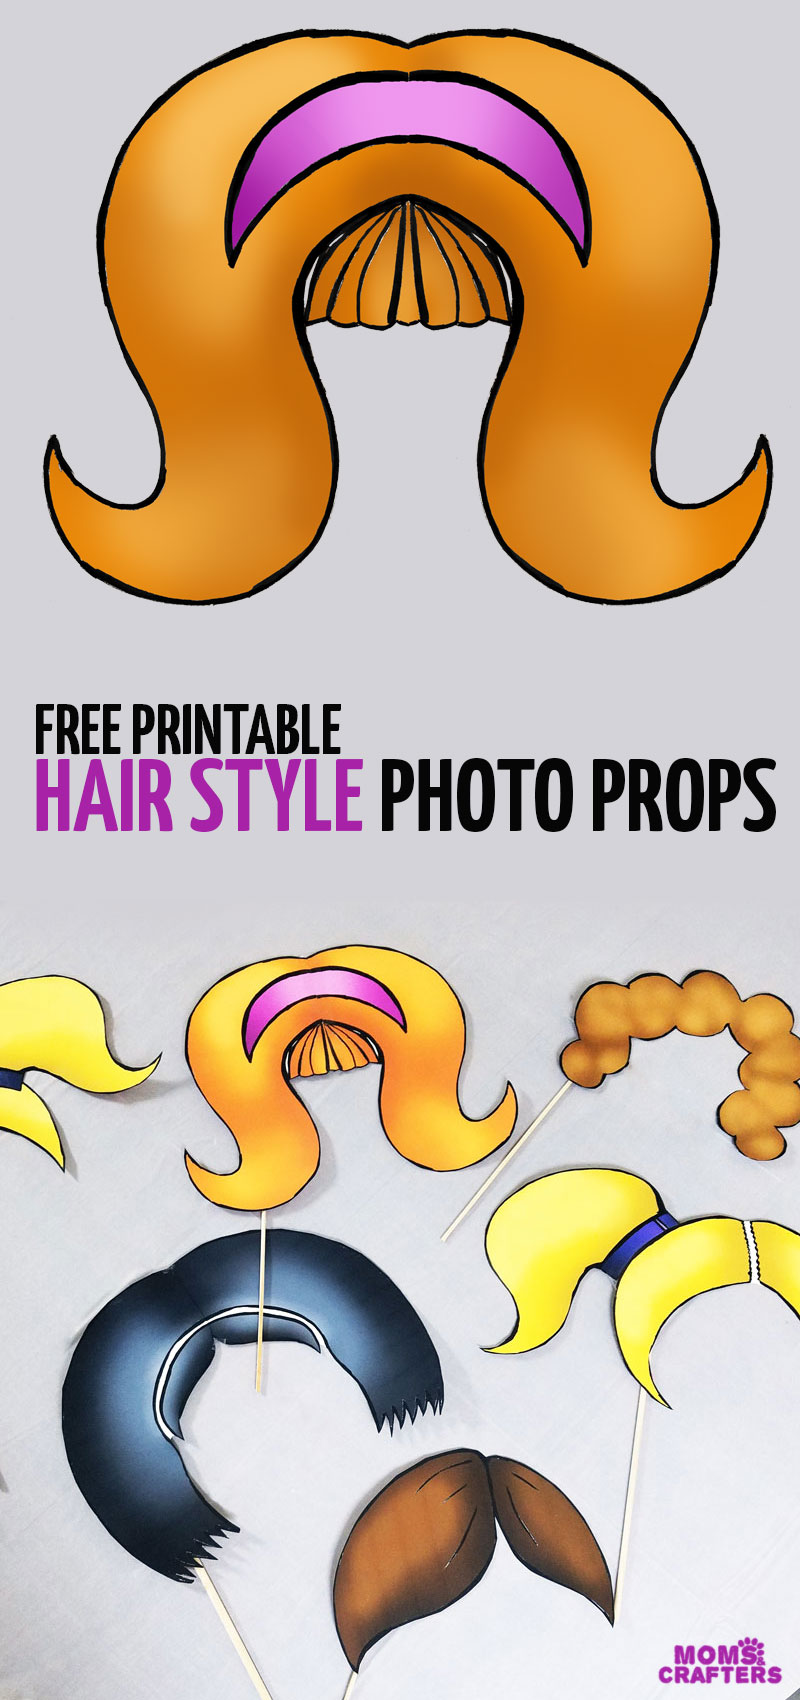 graphic regarding Free Printable Photo Props named Photograph Booth Props - Huge Hair Types * Mothers and Crafters